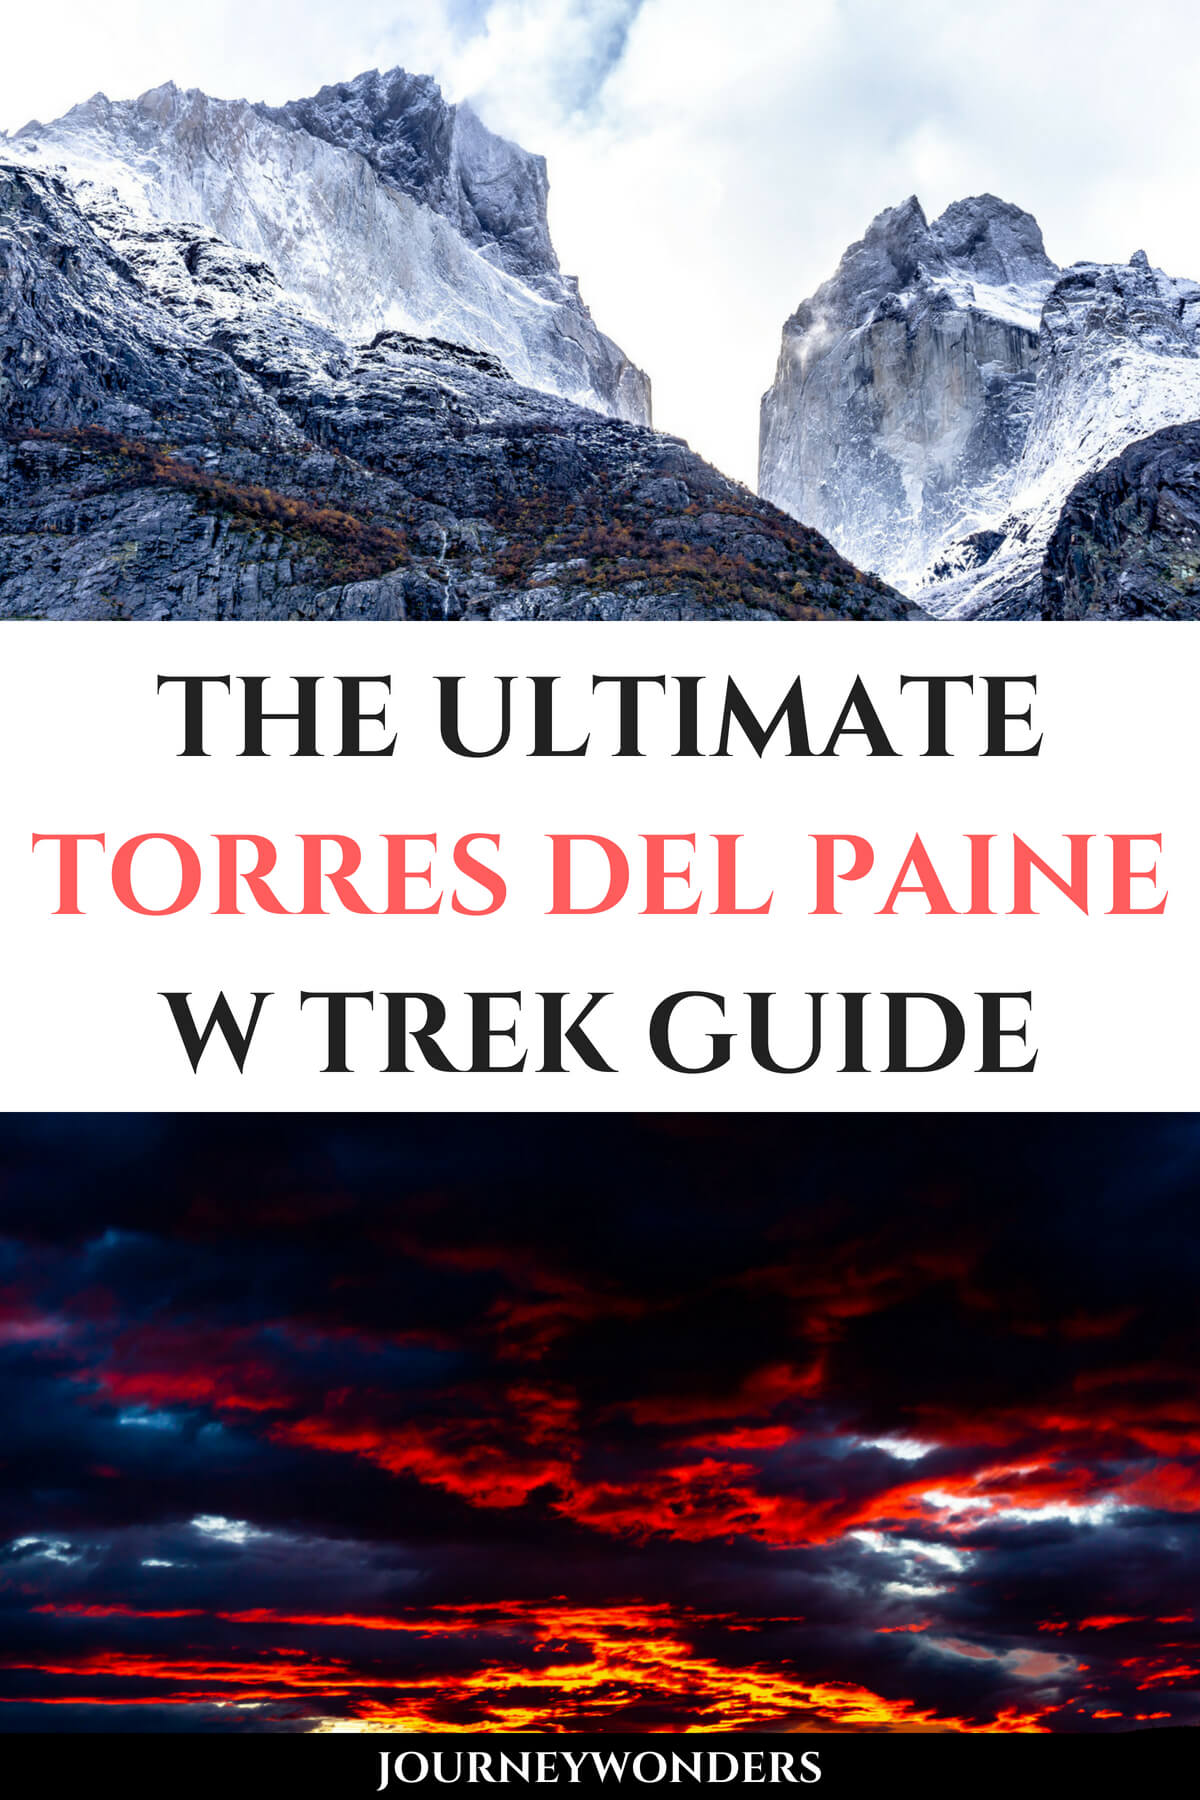 Want to learn all about the best multi day hike of Patagonia? Read this ultimate Torres del Paine W Trek Trekking Guide and get ready for the mountains of wonders!!! #Chile #Patagonia #TorresdelPaine #WTrek